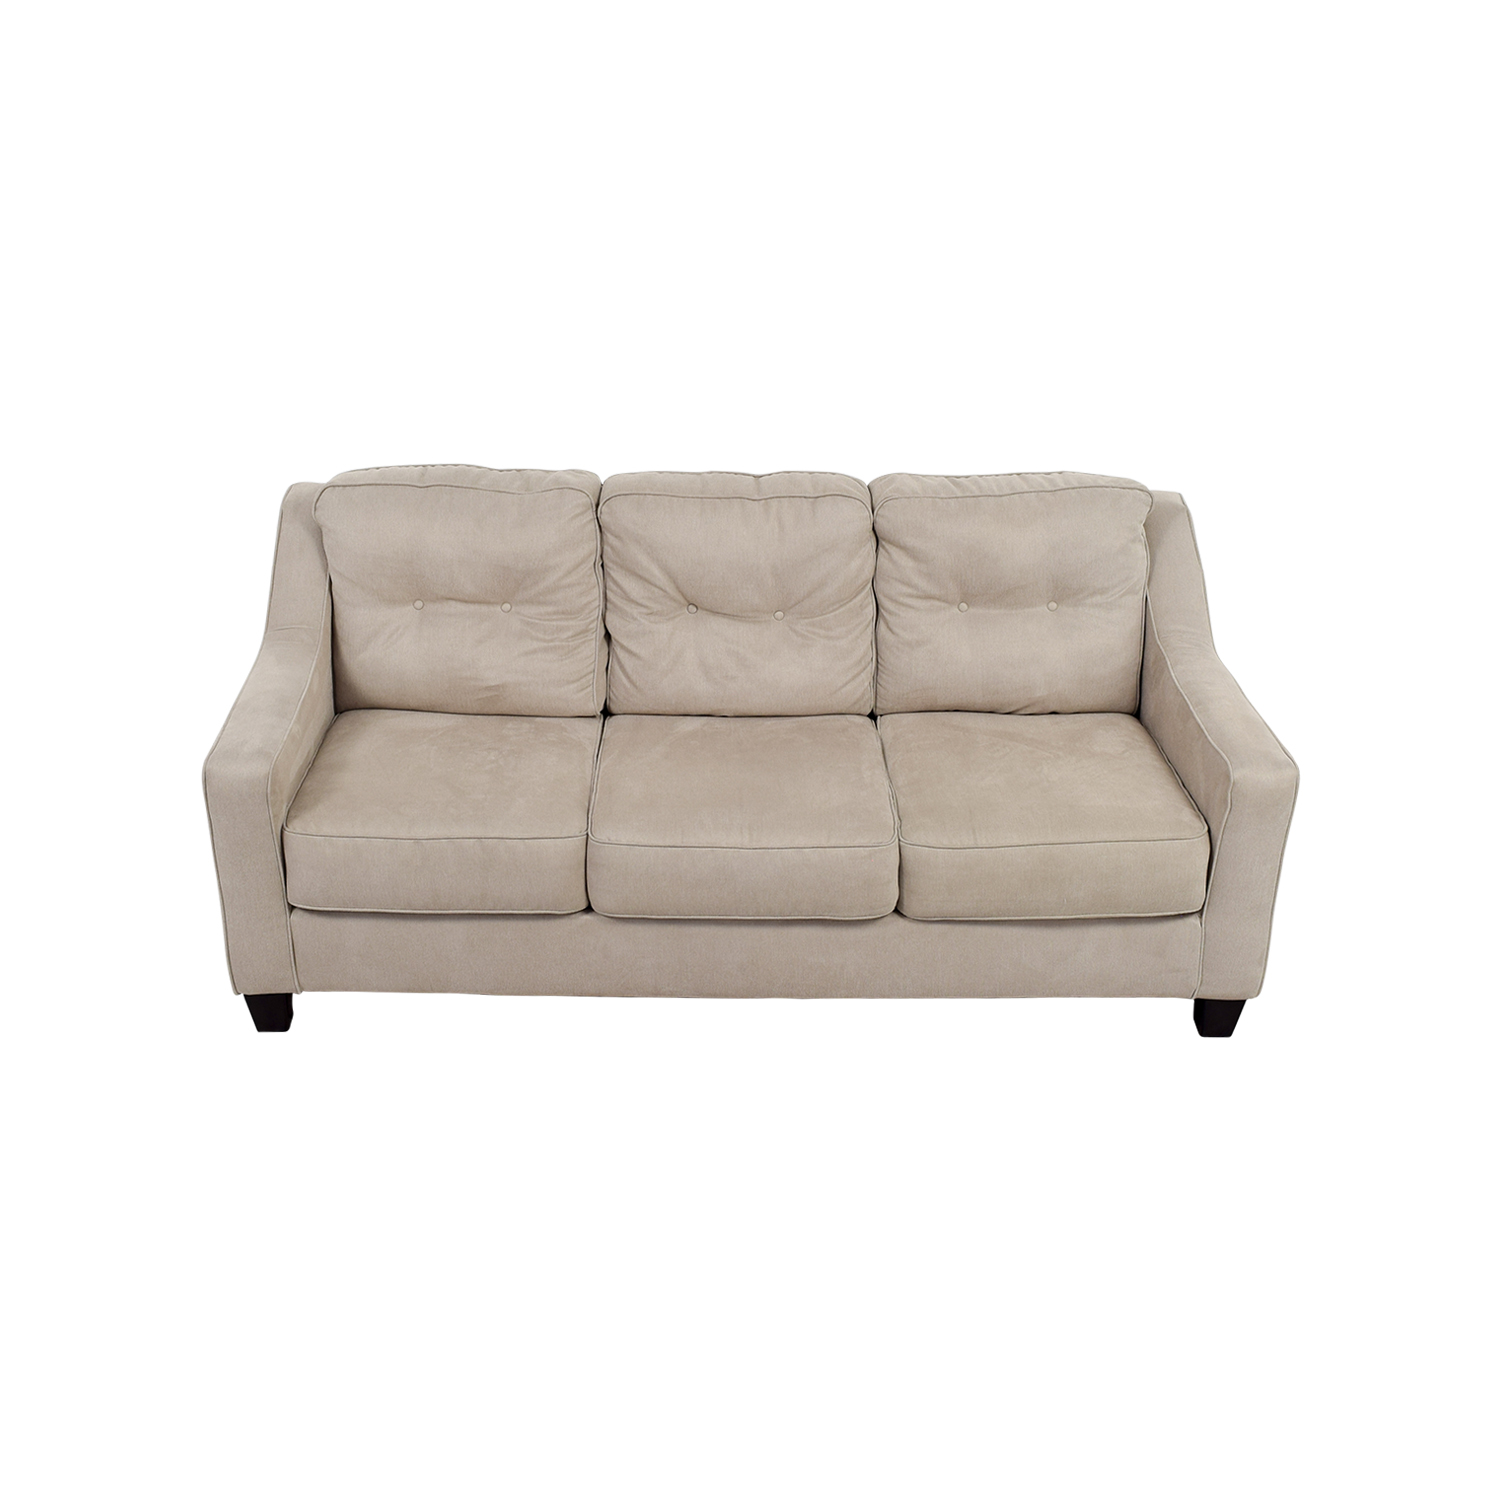 Ashley Furniture Ashley Furniture Beige Three-Cushion Couch on sale